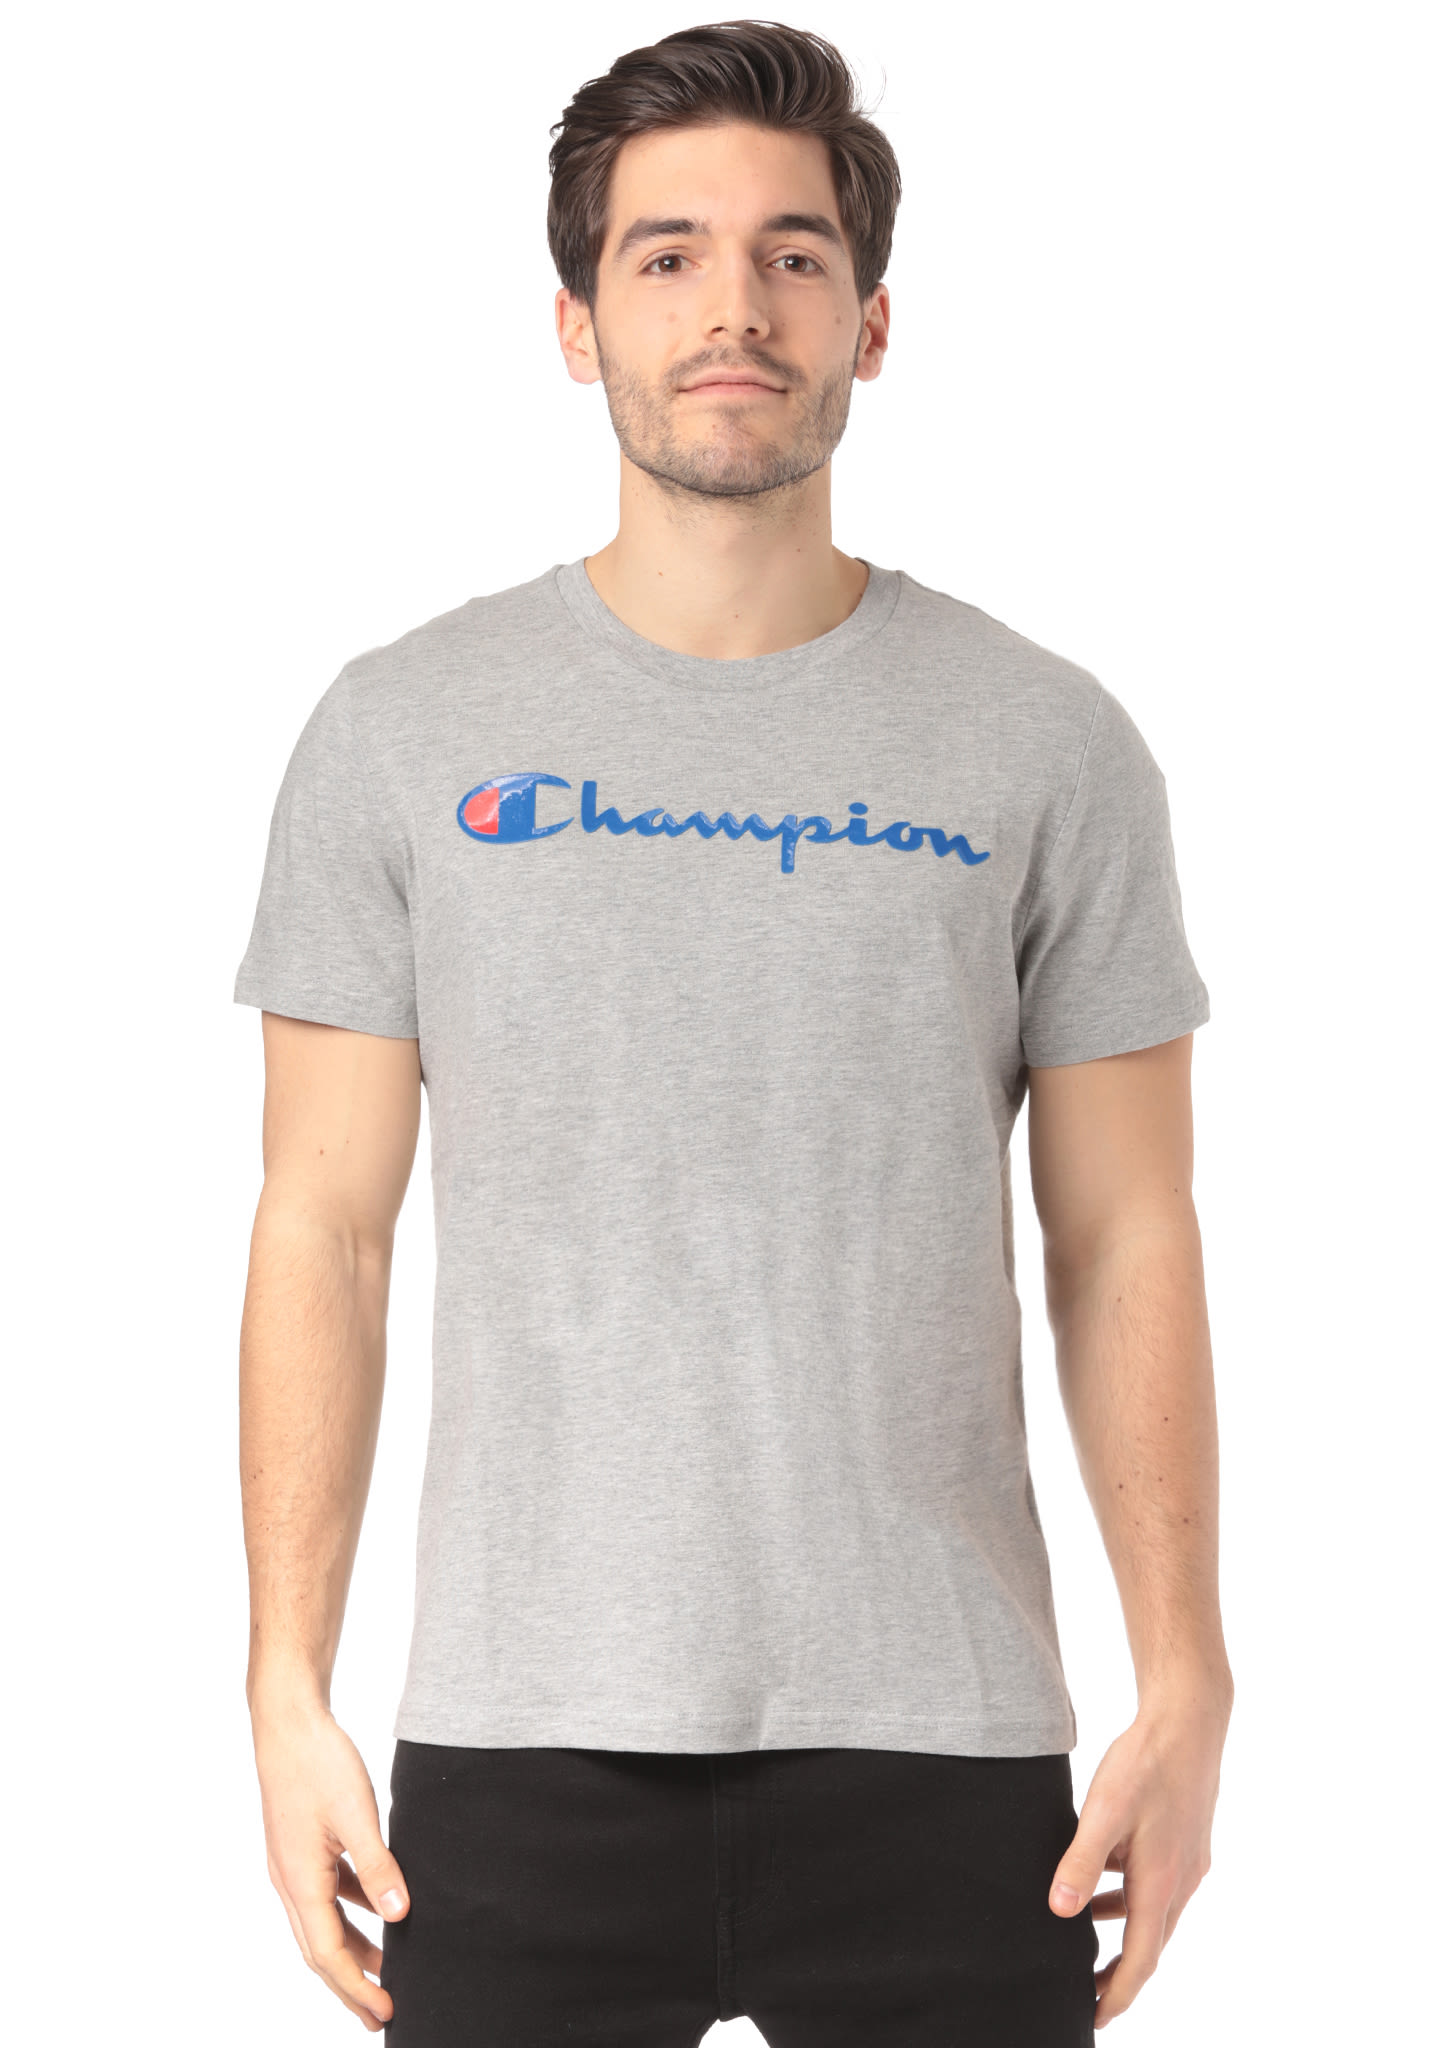 Champion American Classics - T-Shirt for Men - Grey - Planet Sports 9b87c7f1087e